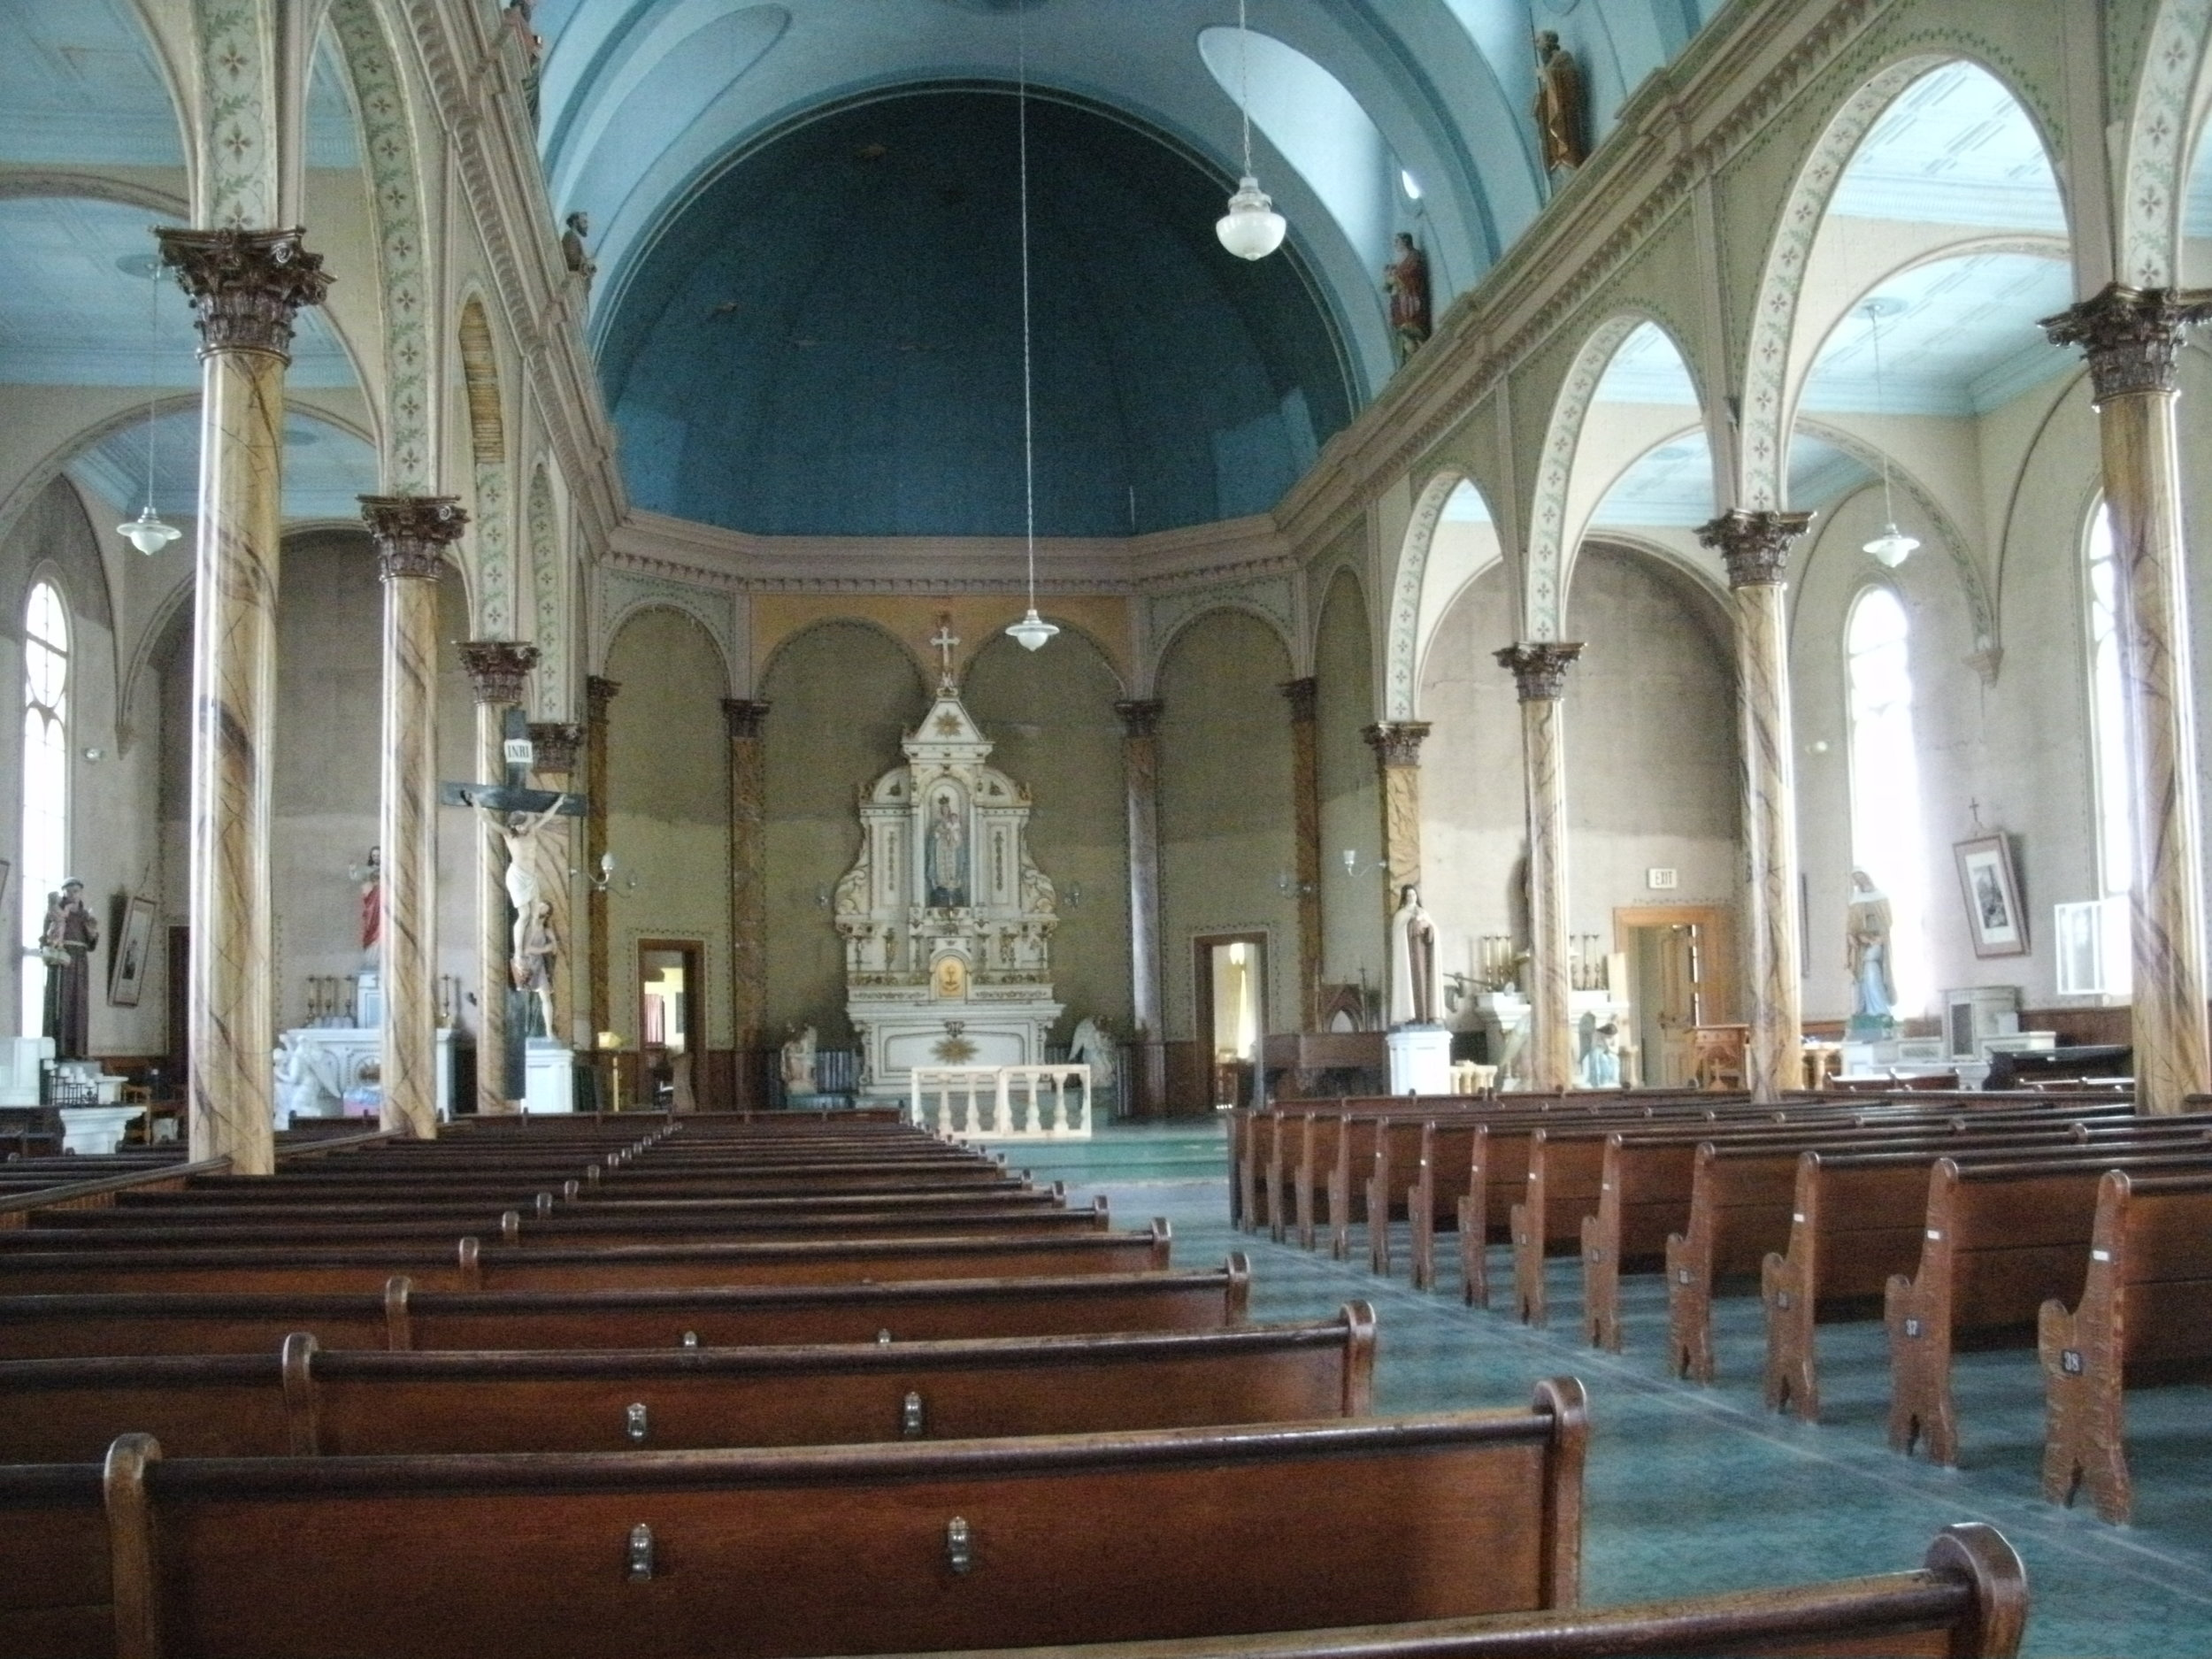 nave-with-stage-removed-abd-communion-rail-doors-in-place.jpg